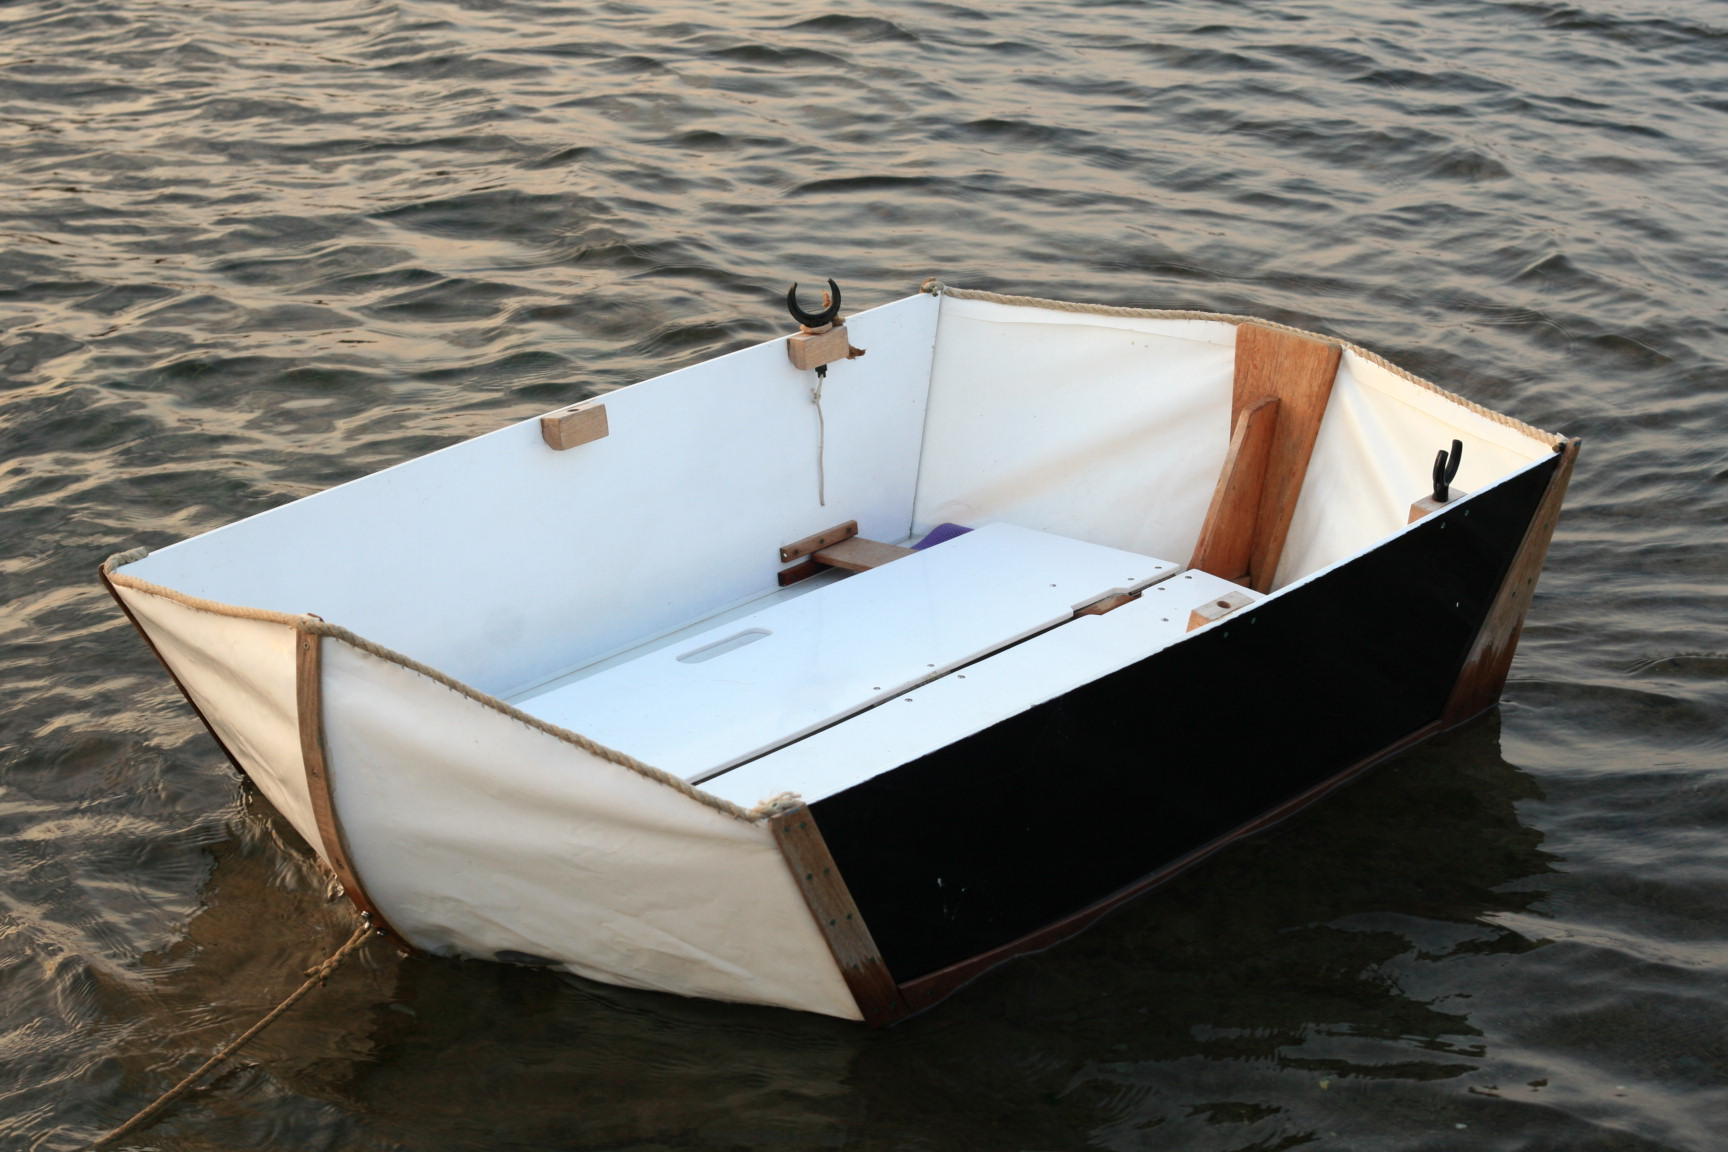 Caraway - Origami folding dinghy